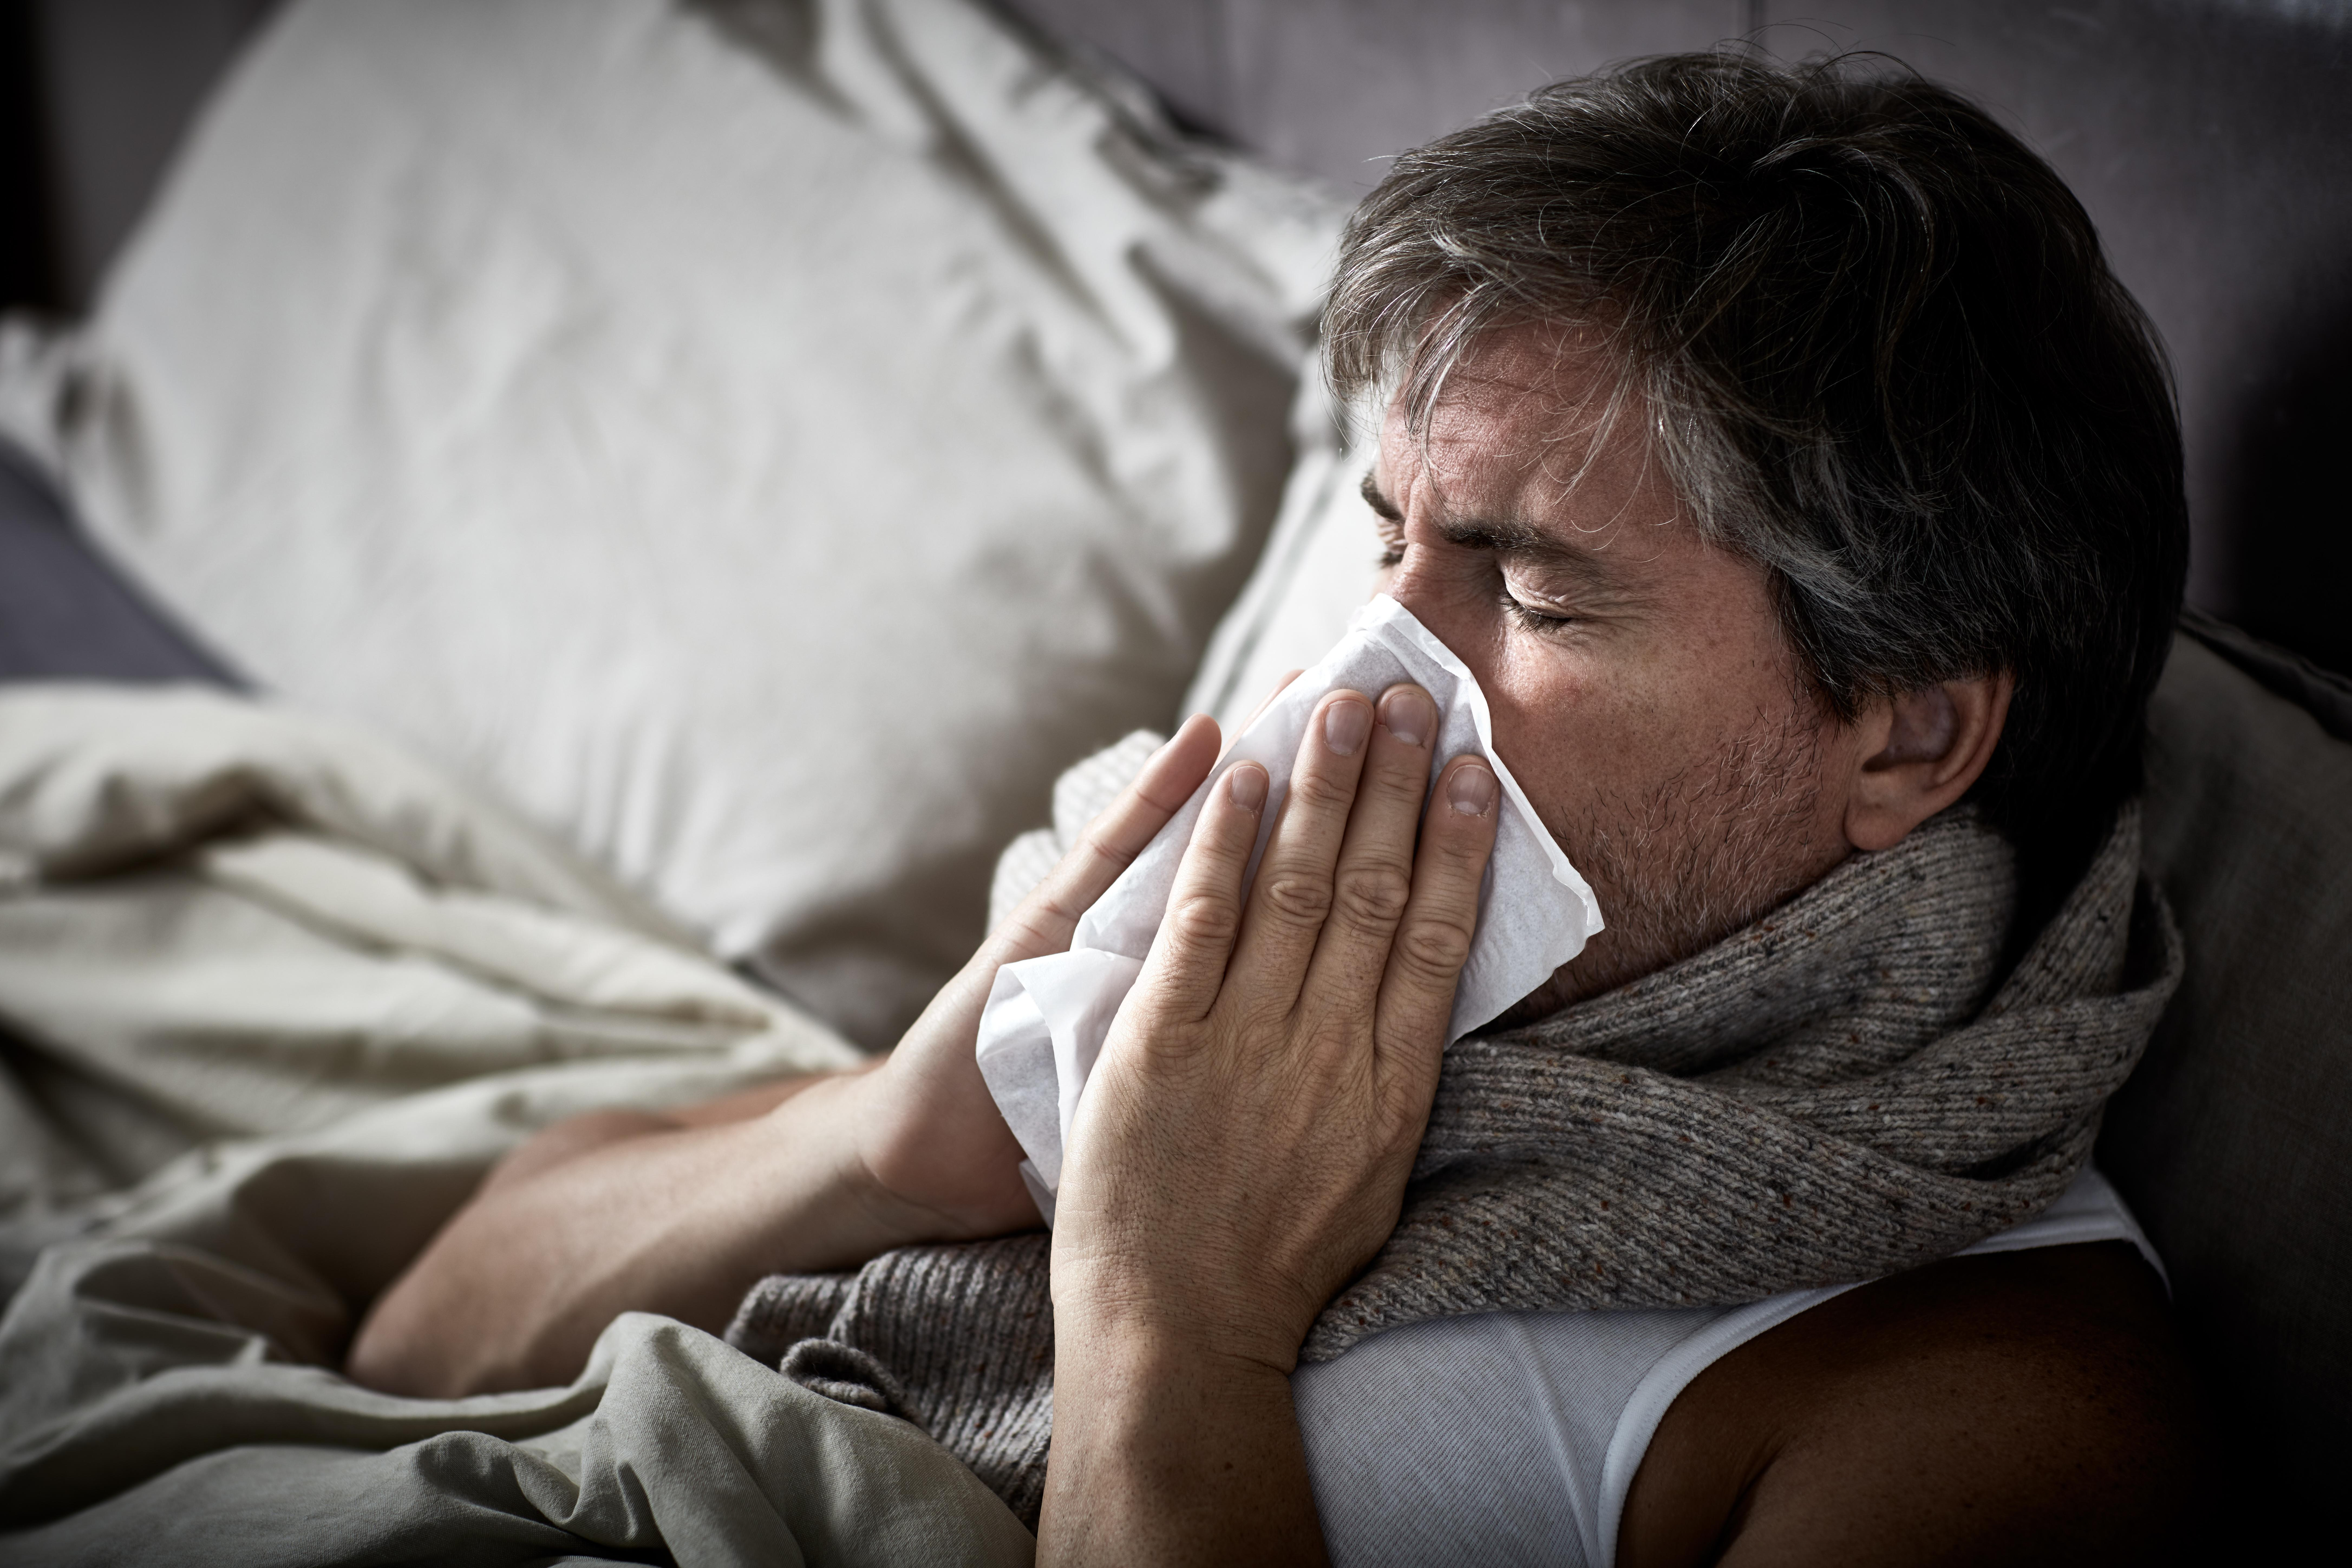 Individuals with Chronic Illness or Compromised Immune Systems